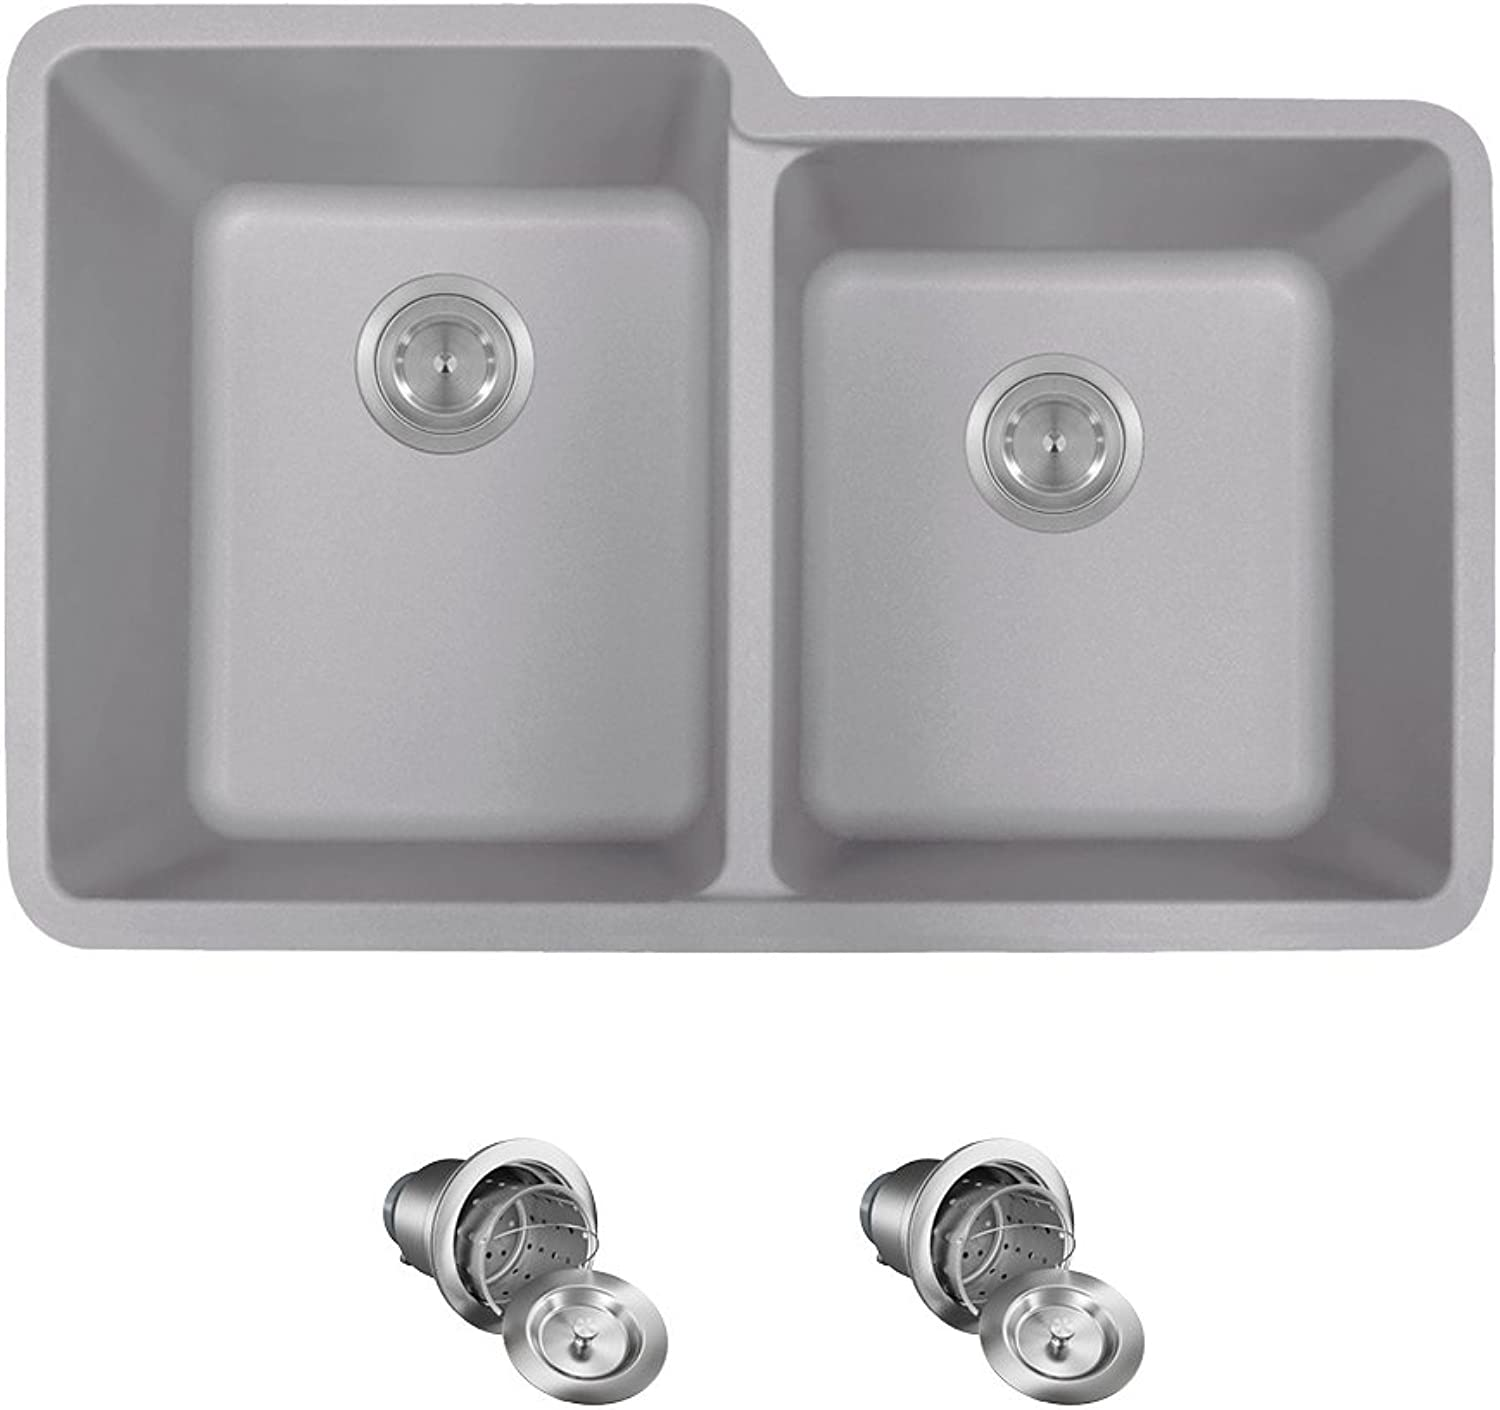 801-Silver TruGranite Kitchen Ensemble with Basket Strainers (Bundle - 3 Items  Sink and 2 Strainers)